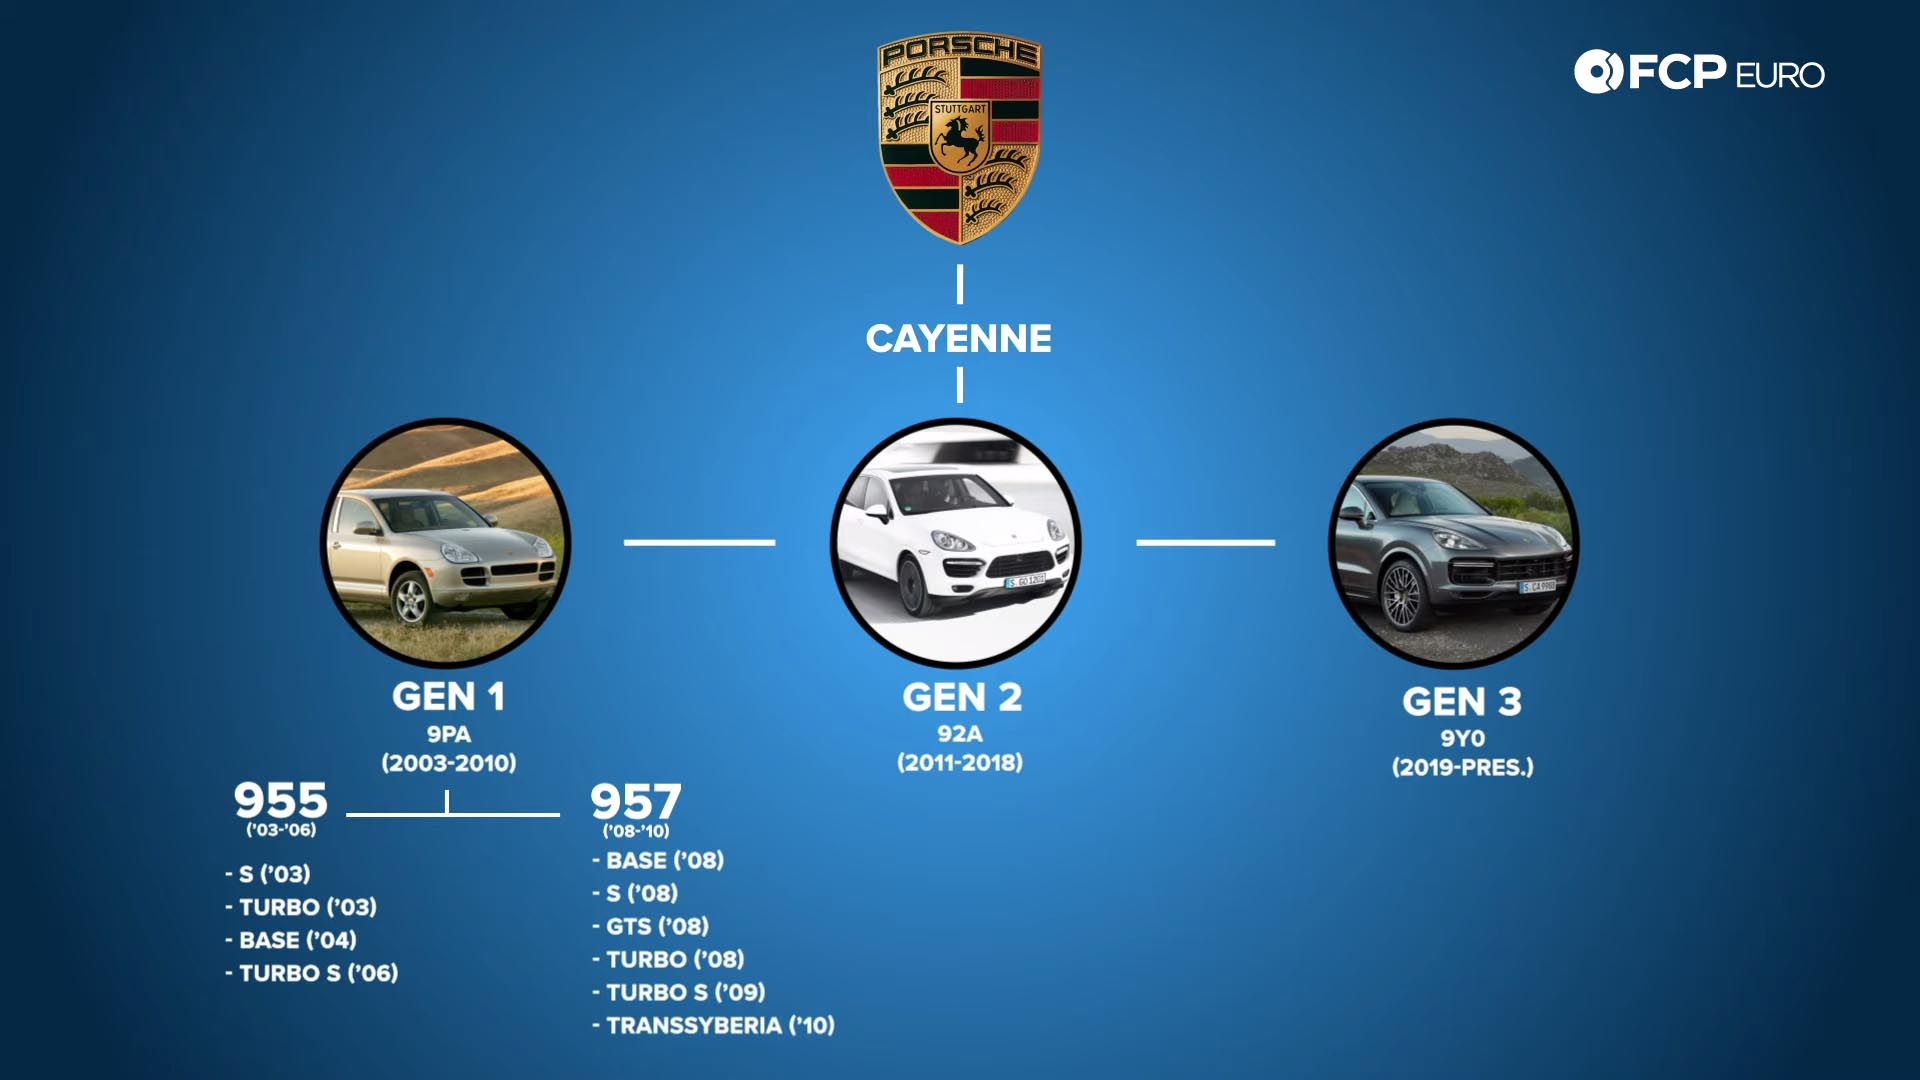 955 957 Porsche Cayenne Buyer's Guide family tree